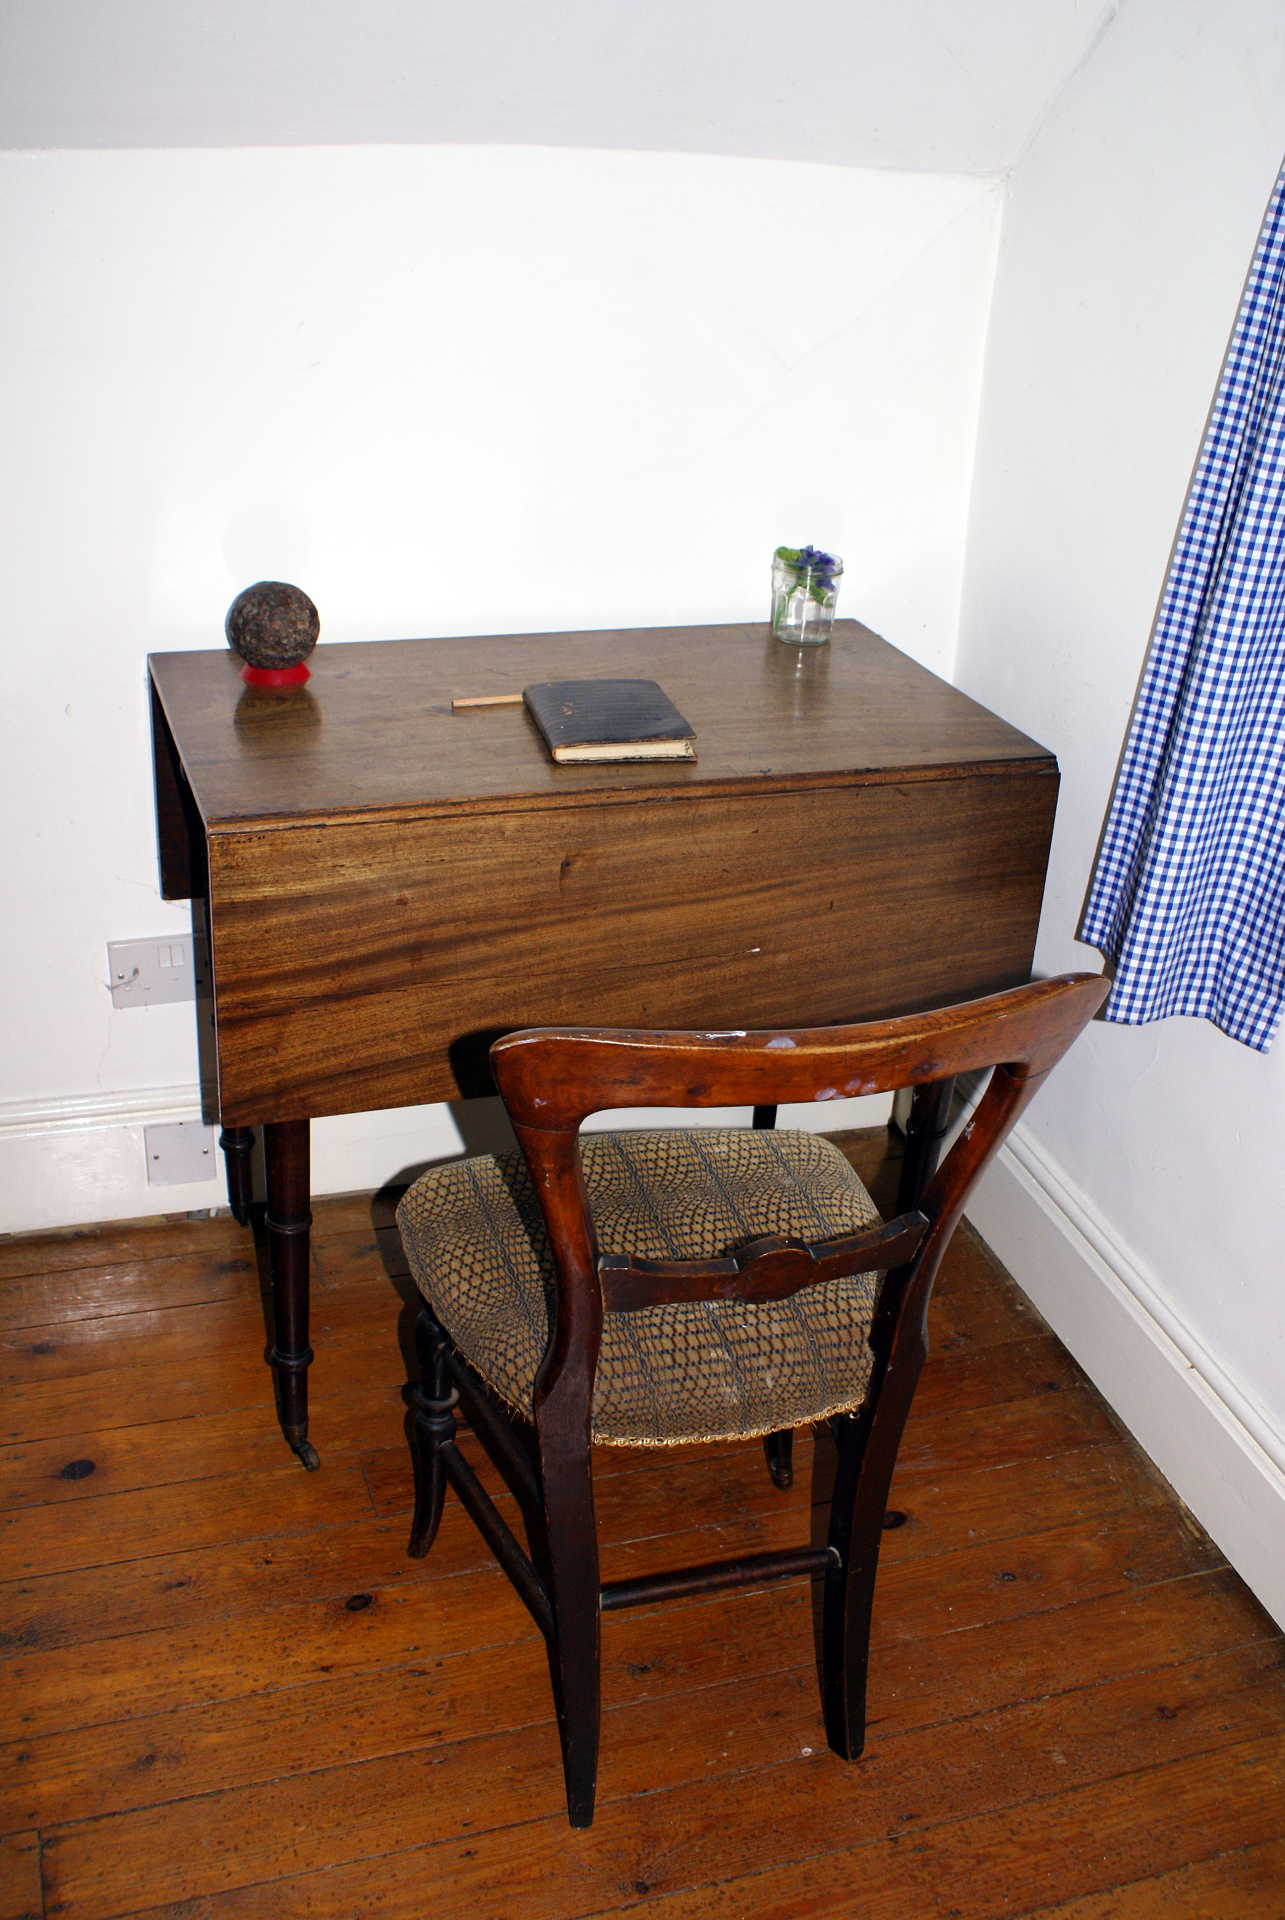 Jefferies' writing desk